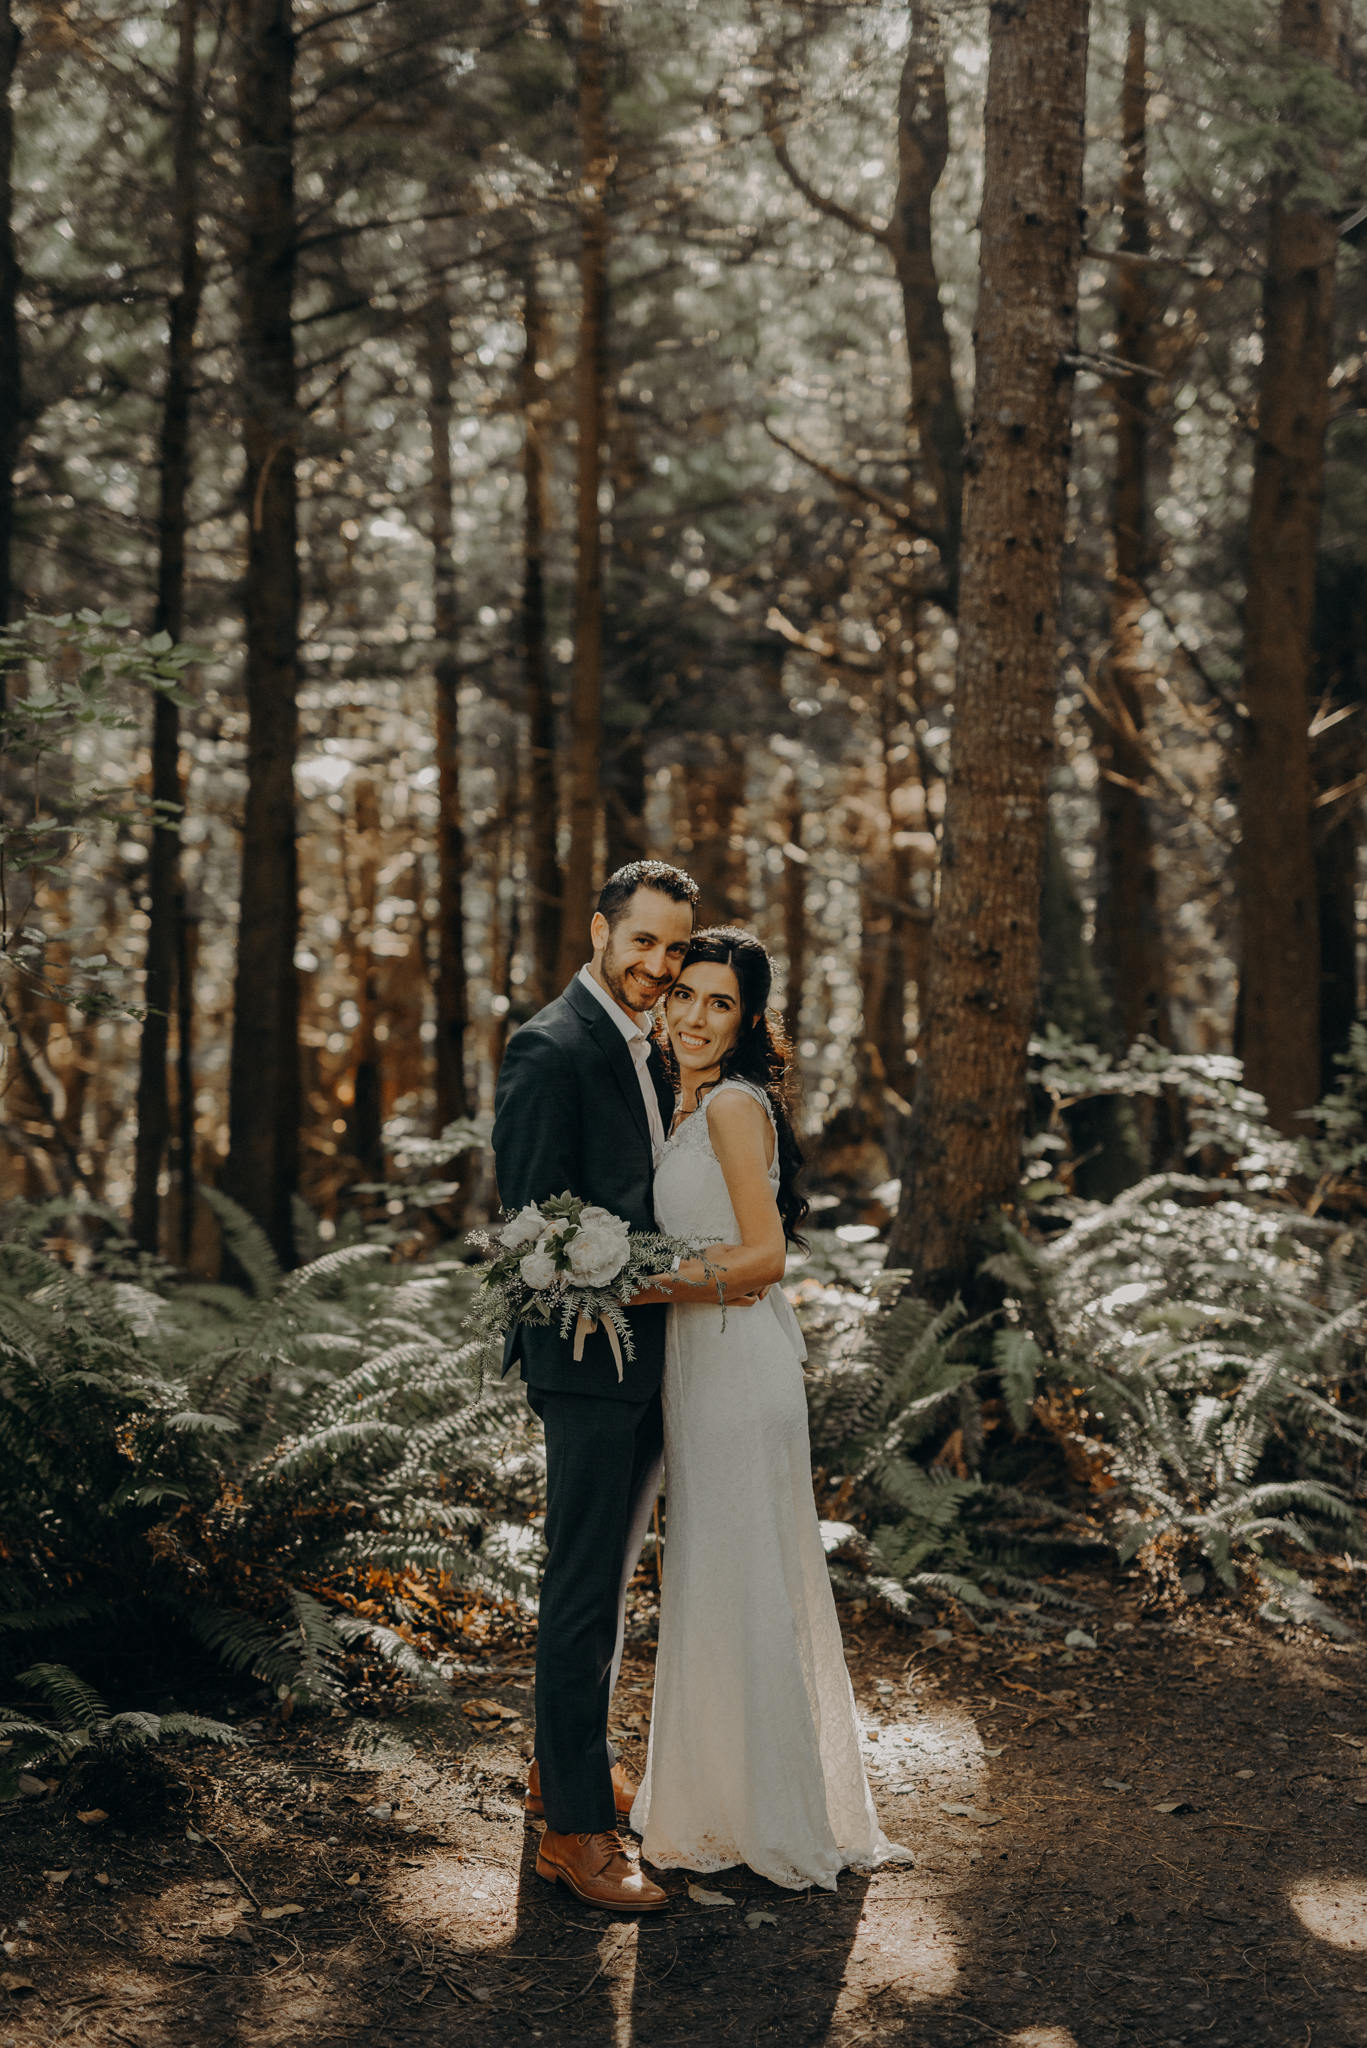 Isaiah + Taylor Photography - Cape Flattery Elopement, Olympia National Forest Wedding Photographer-017.jpg